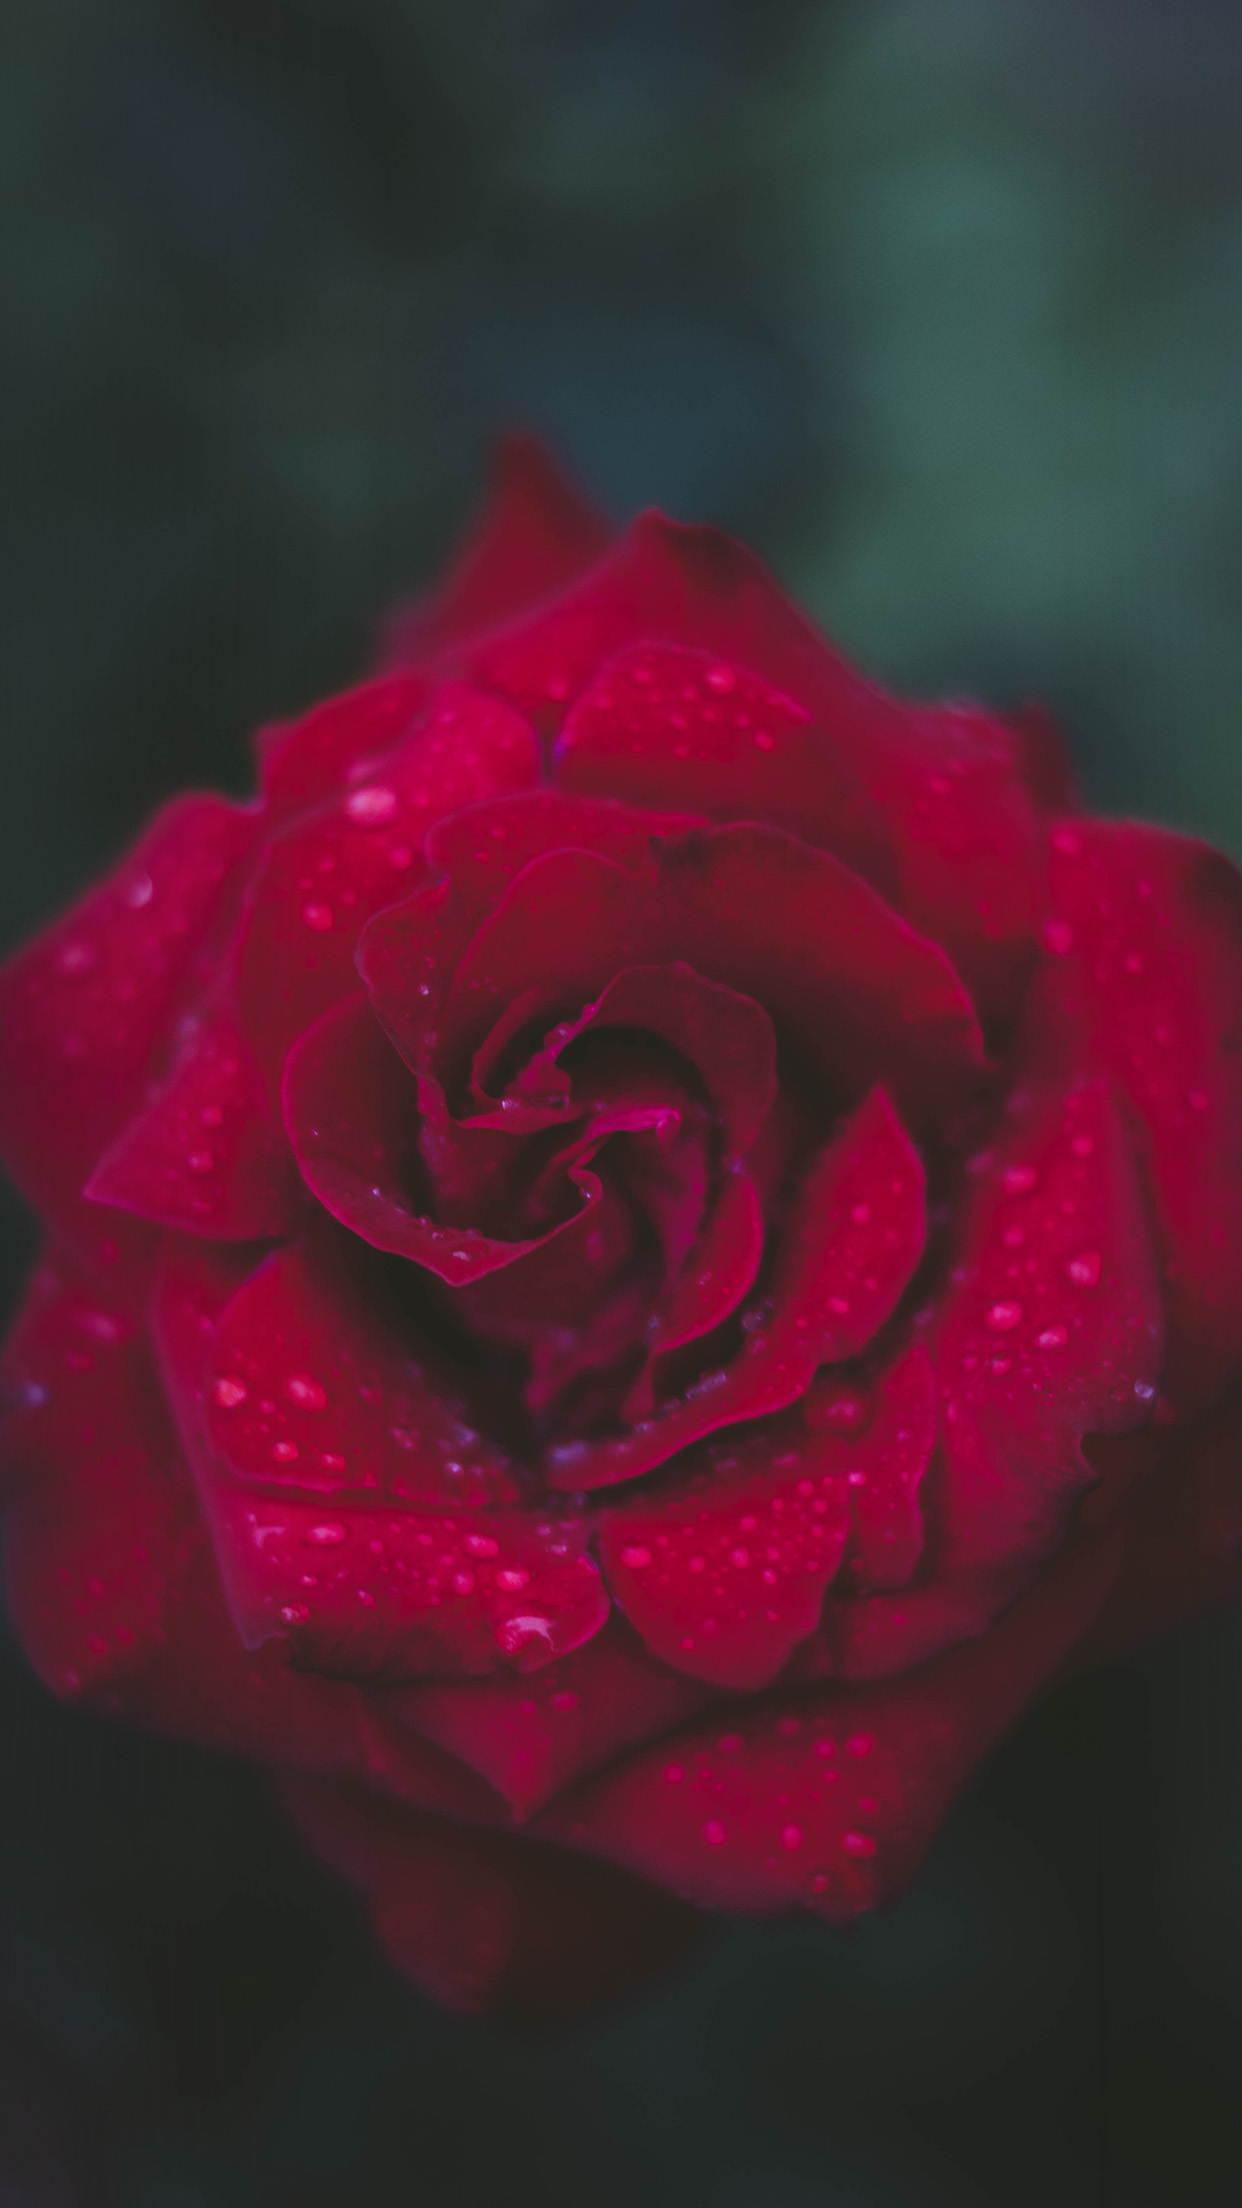 Papers Co Iphone Wallpaper Nv54 Rose Red Flower Nature